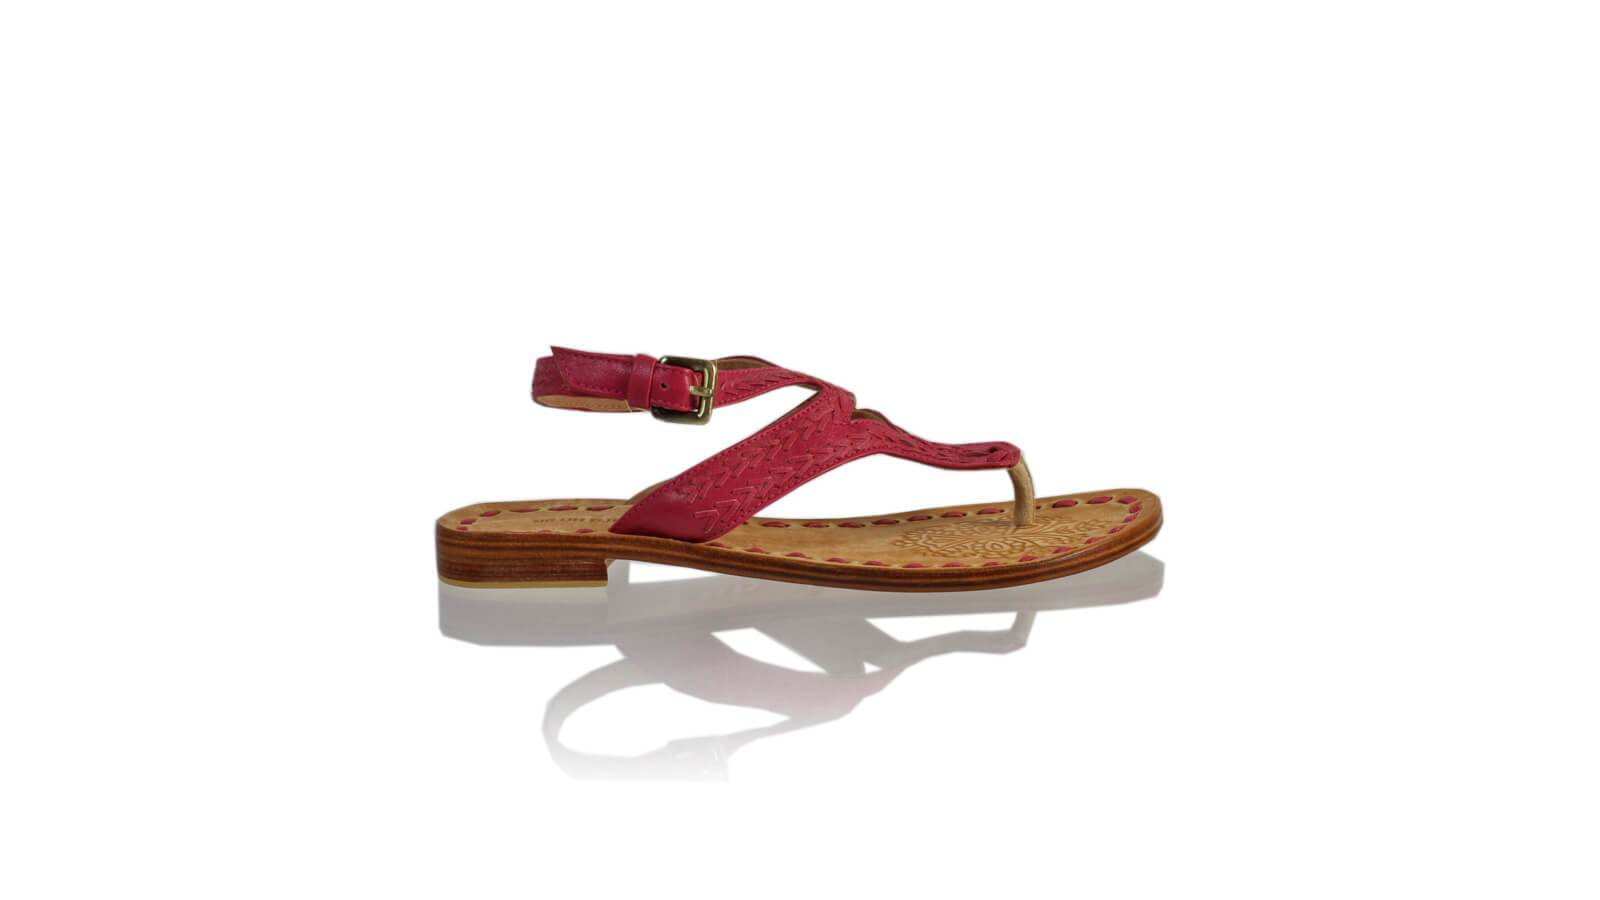 Leather-shoes-Agra 20mm Flats - Fuschia-sandals flat-NILUH DJELANTIK-NILUH DJELANTIK